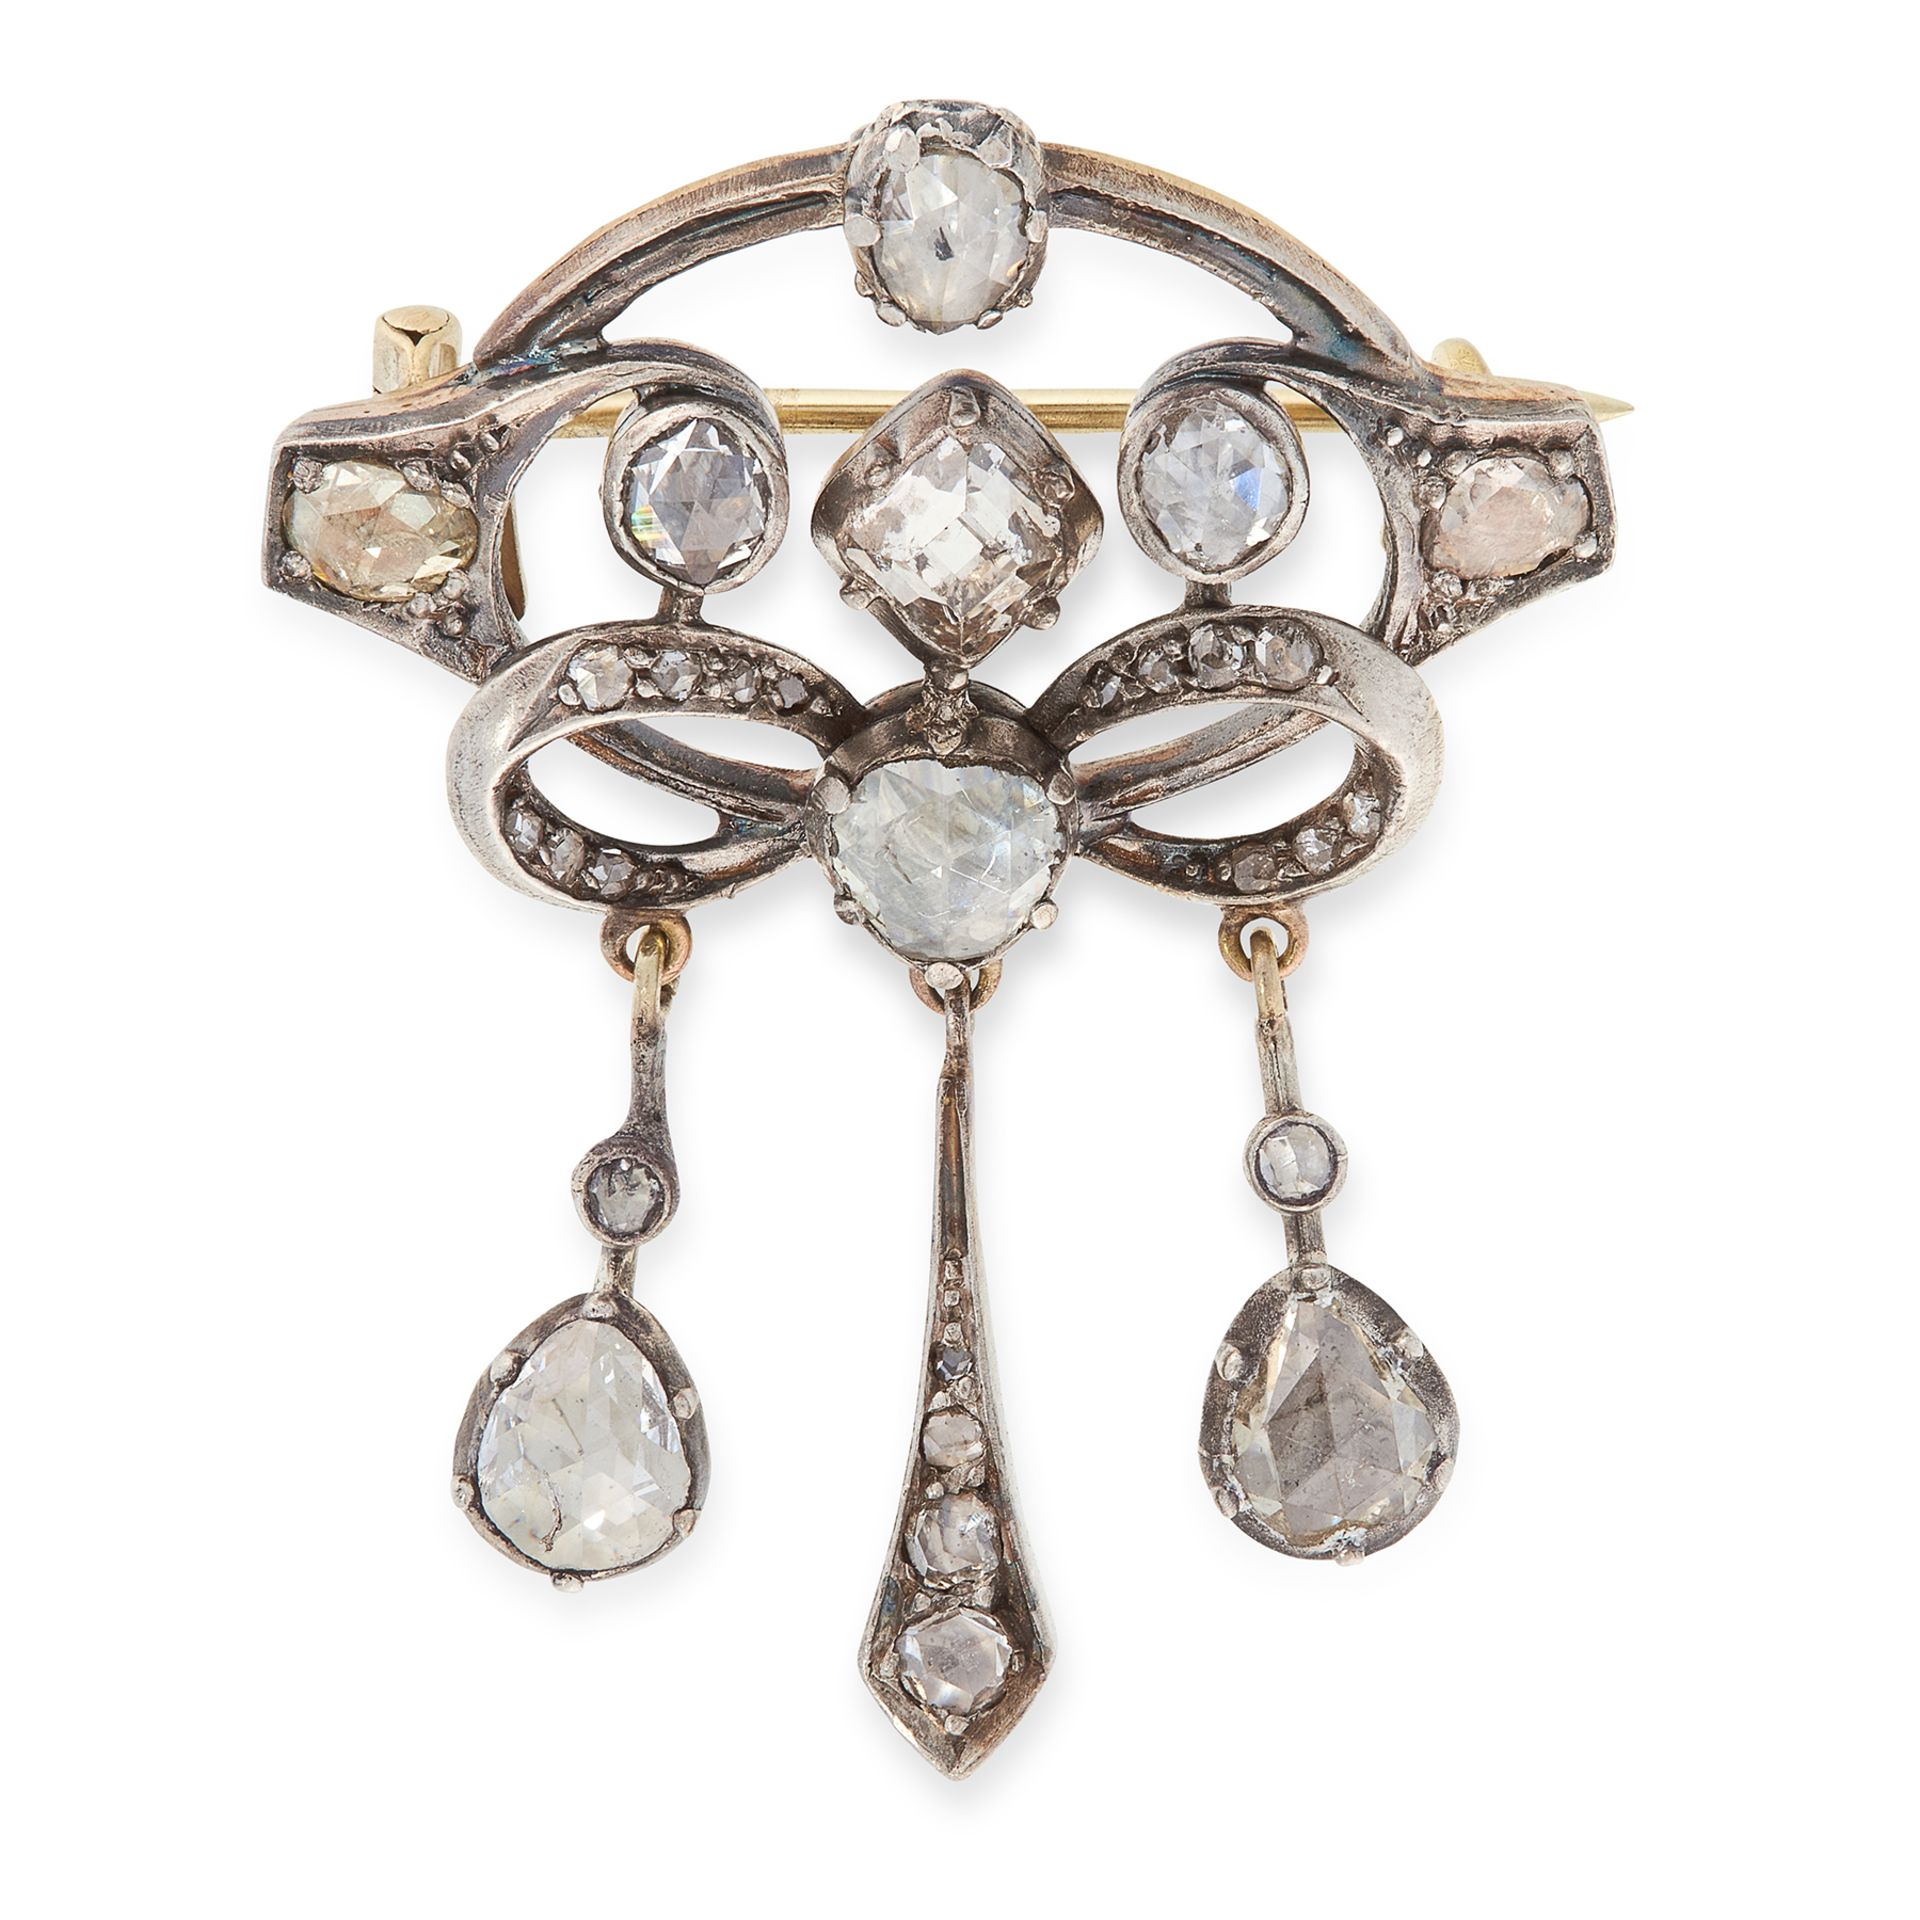 AN ANTIQUE DIAMOND BROOCH, CIRCA 1900 in yellow gold and silver, the scrolling body with central bow